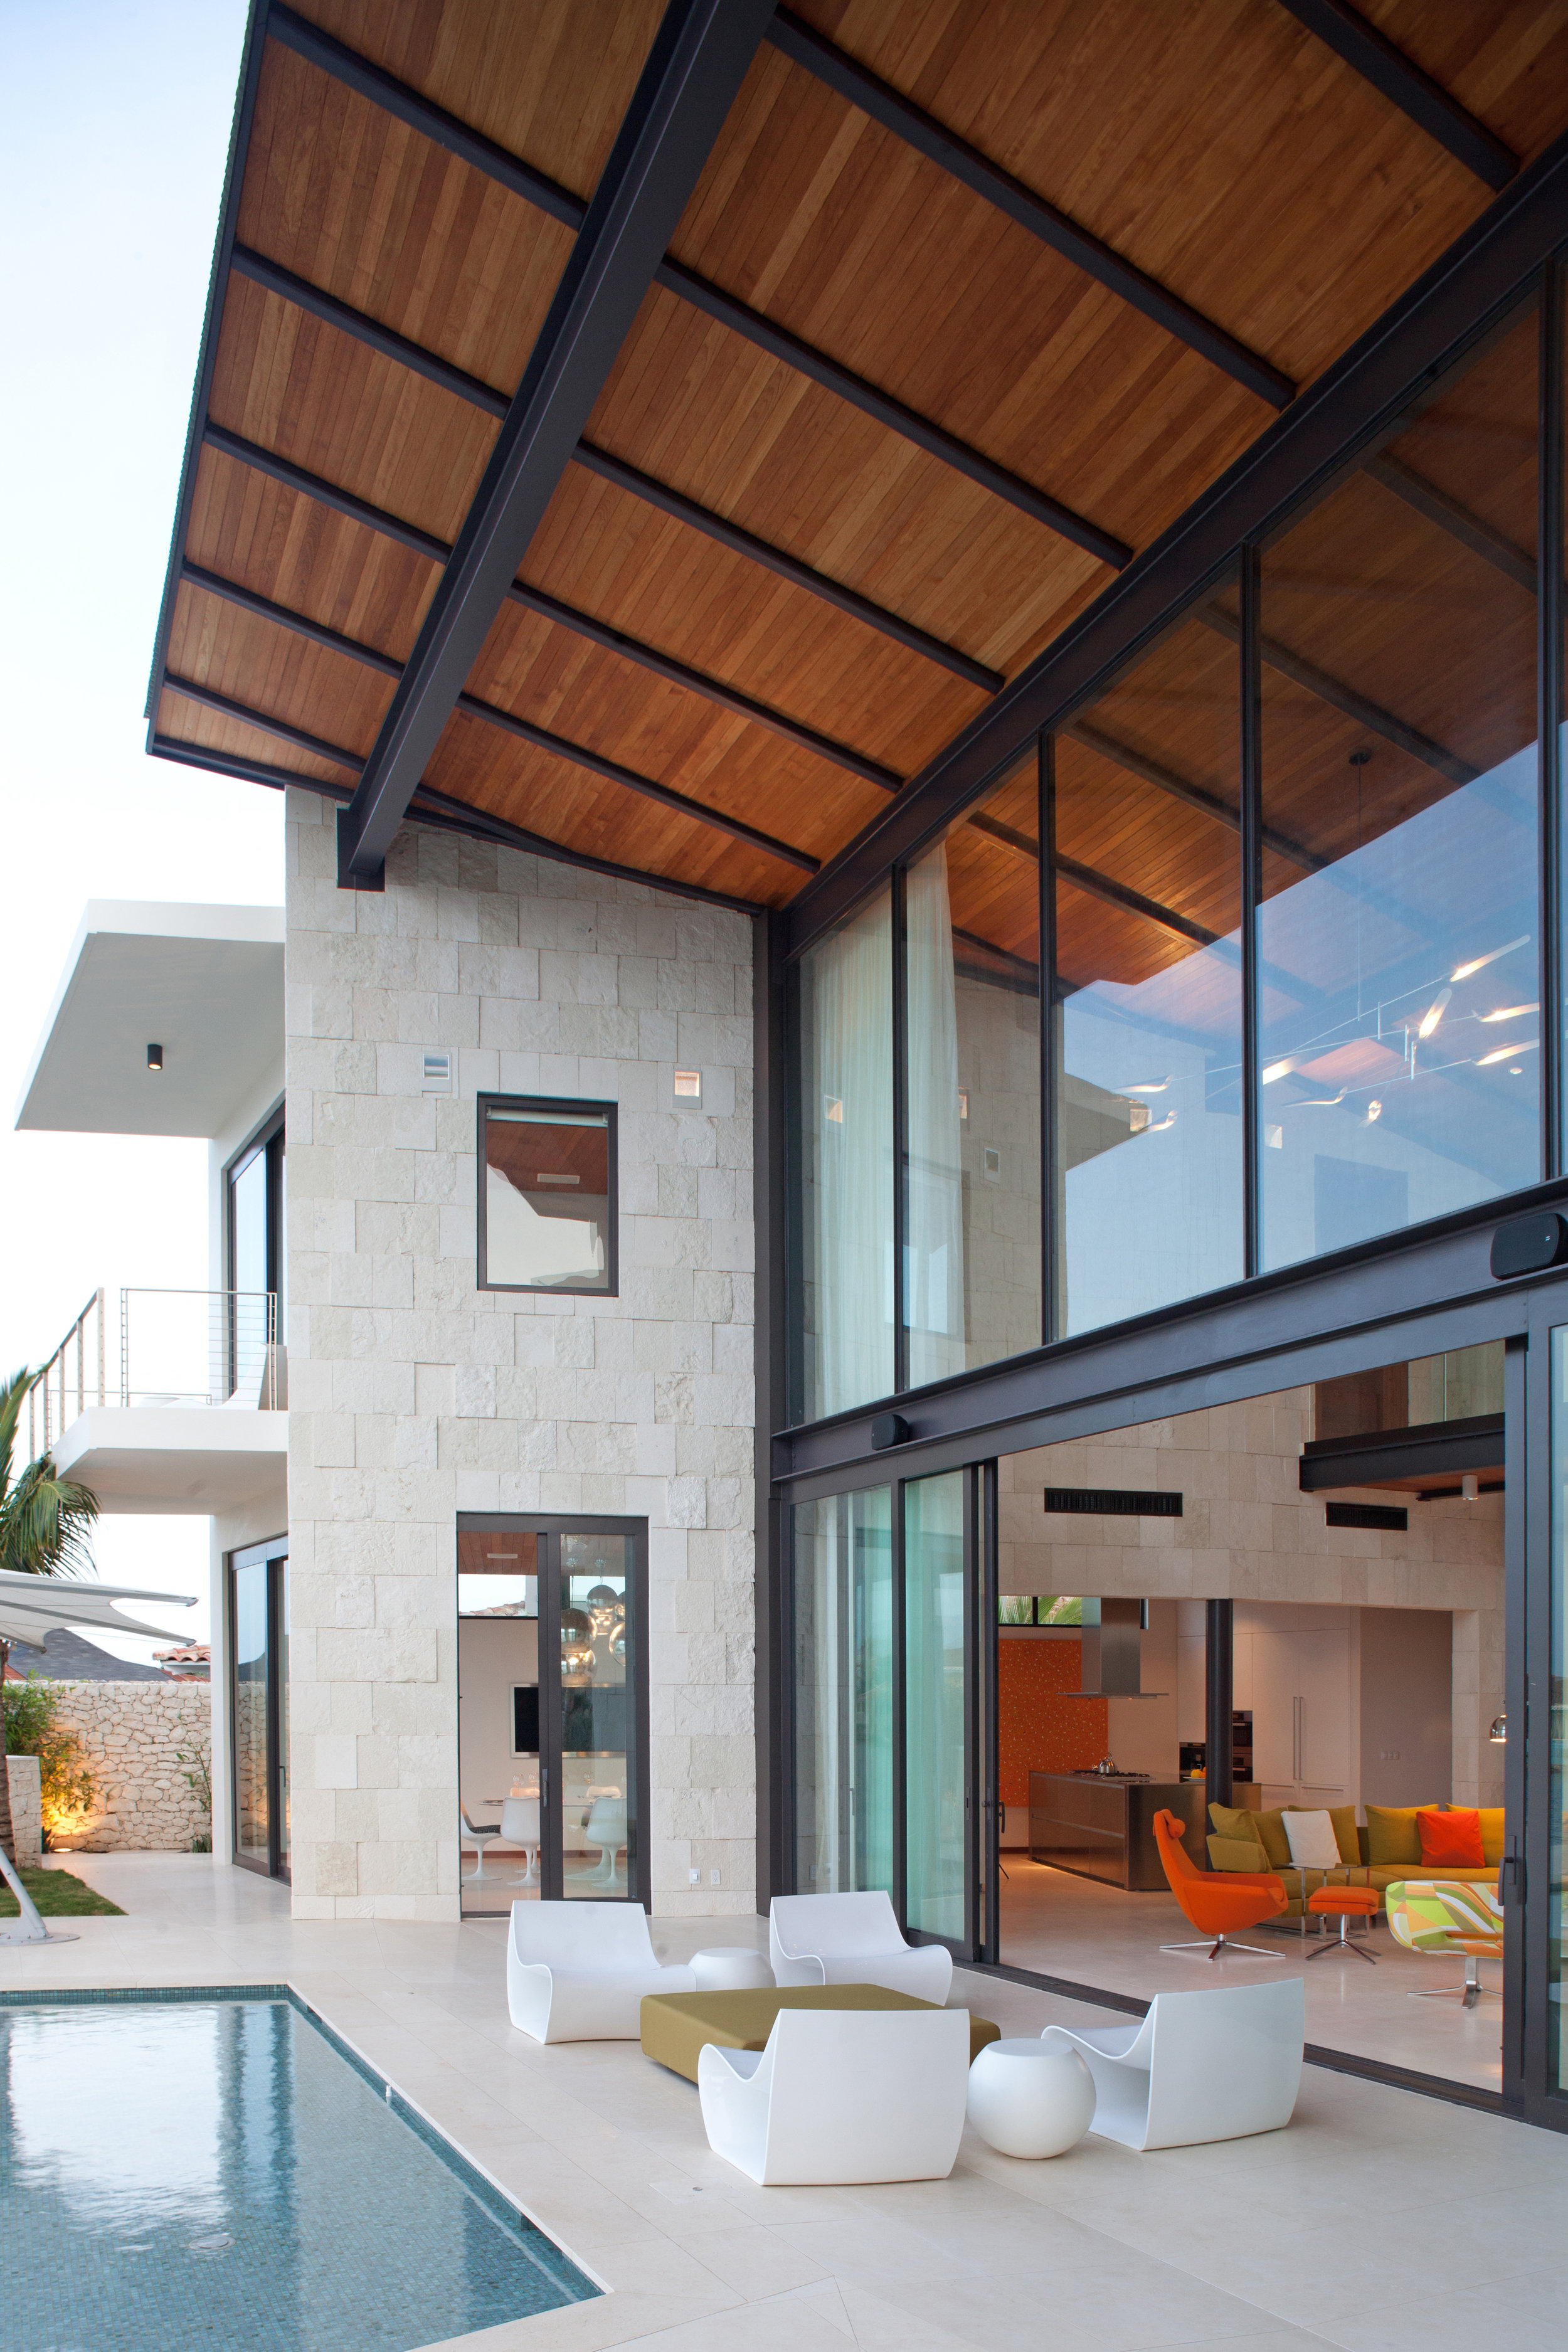 Bonaire Residence by Silberstein Architects Photo by Robin Hill (c) HI RES (92).jpg